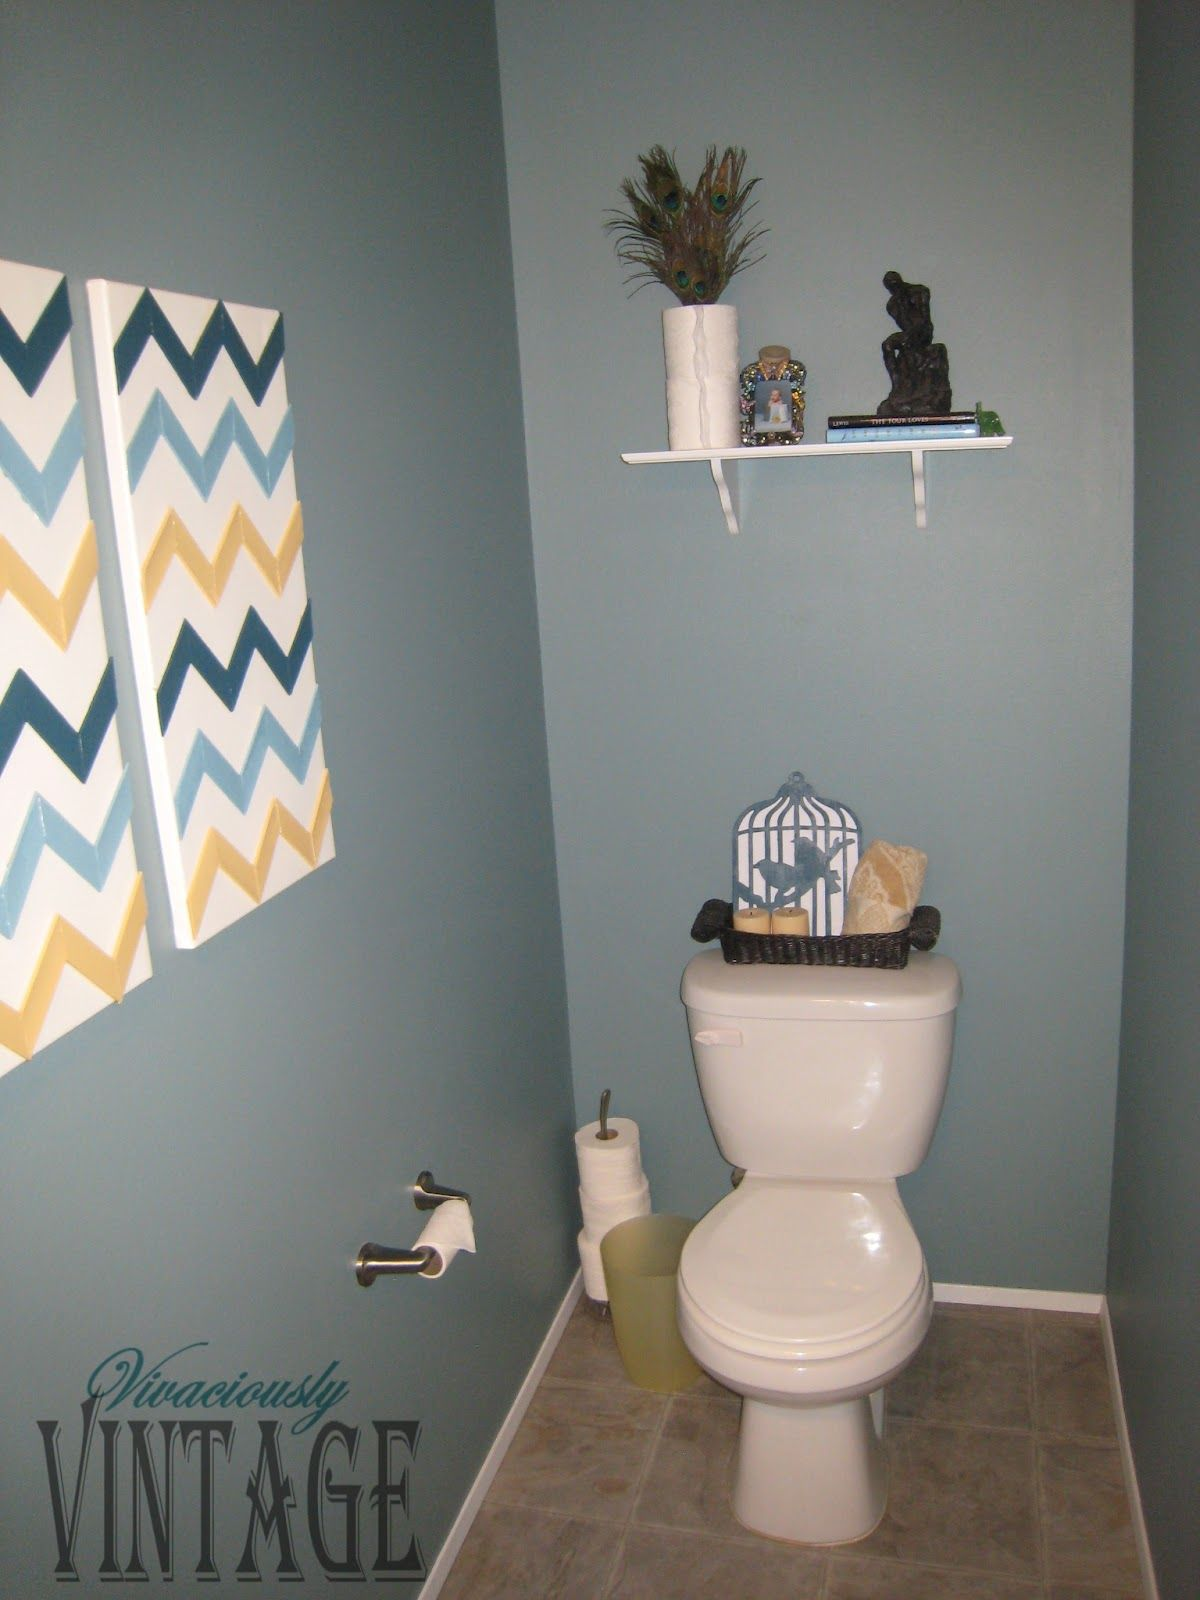 Charmant Downstairs Toilet Decorating Ideas: Vivaciously Vintage Half Bathroom  Update | Style And Design For A